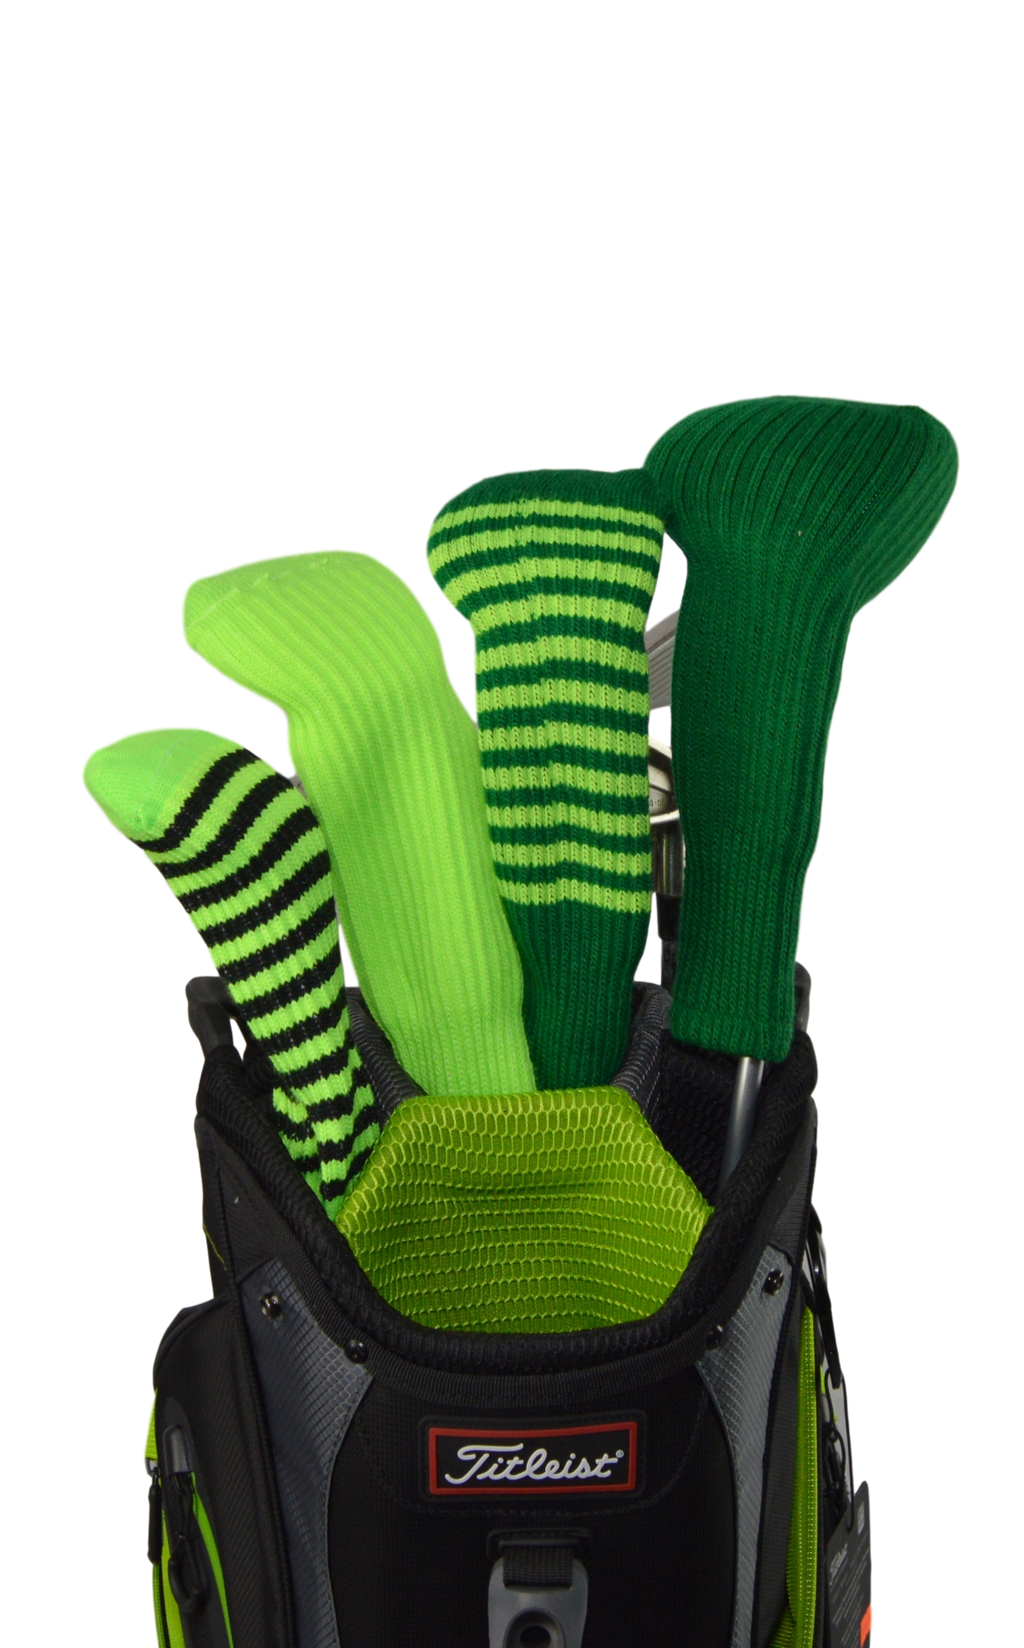 Green and Black Club Sock Golf Headcover